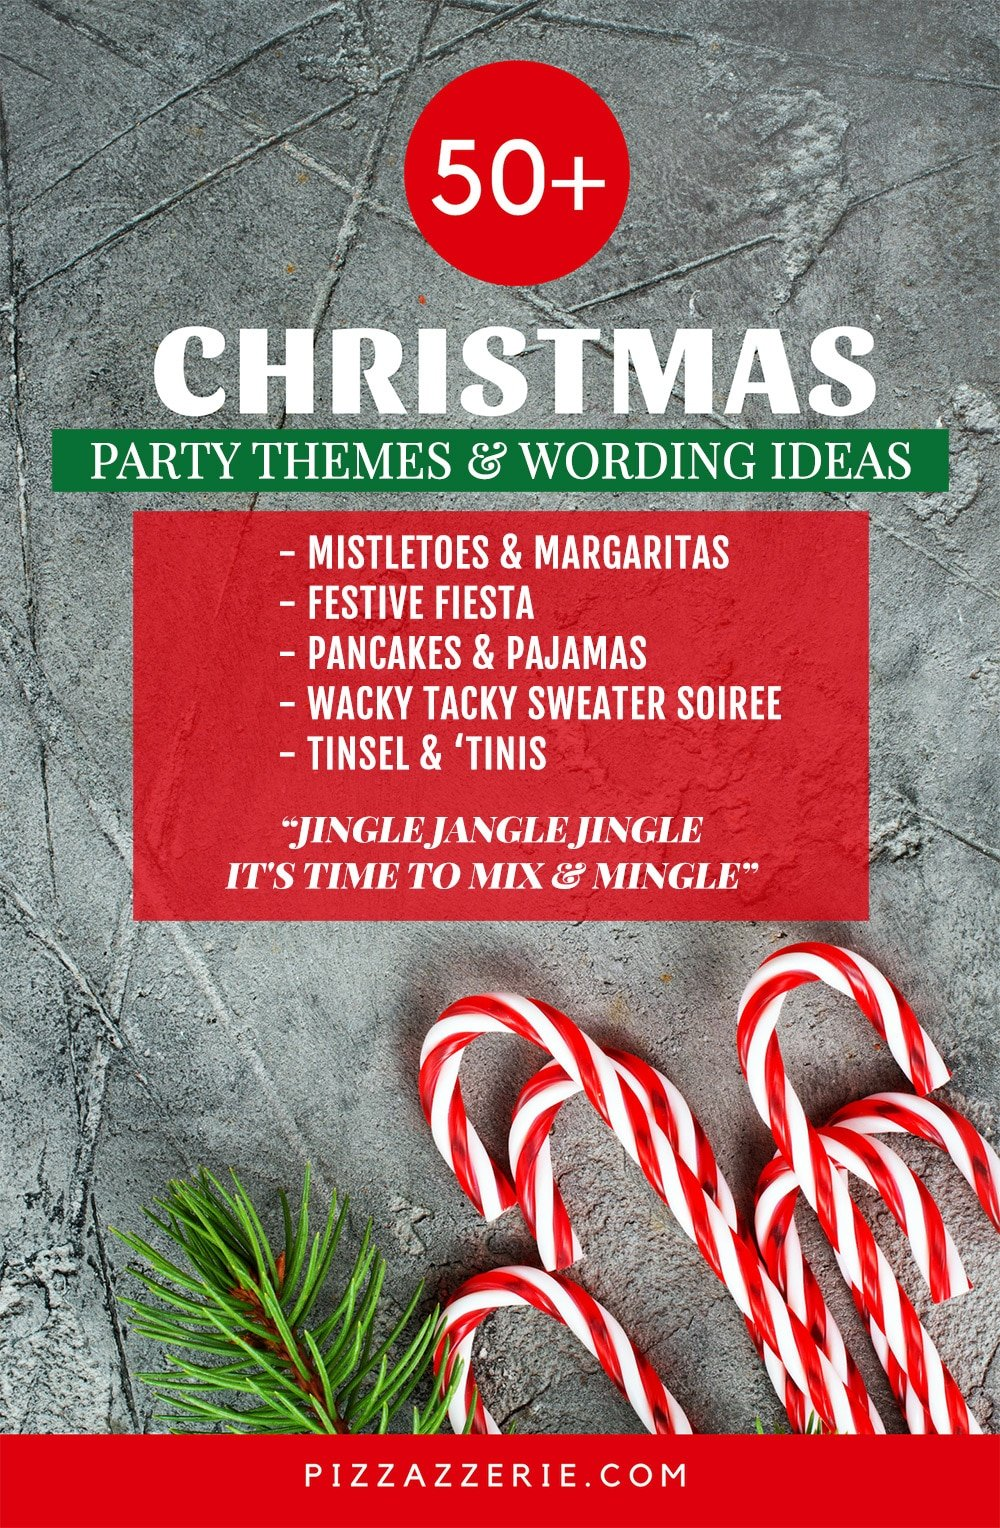 Christmas Party Name Ideas and Themes